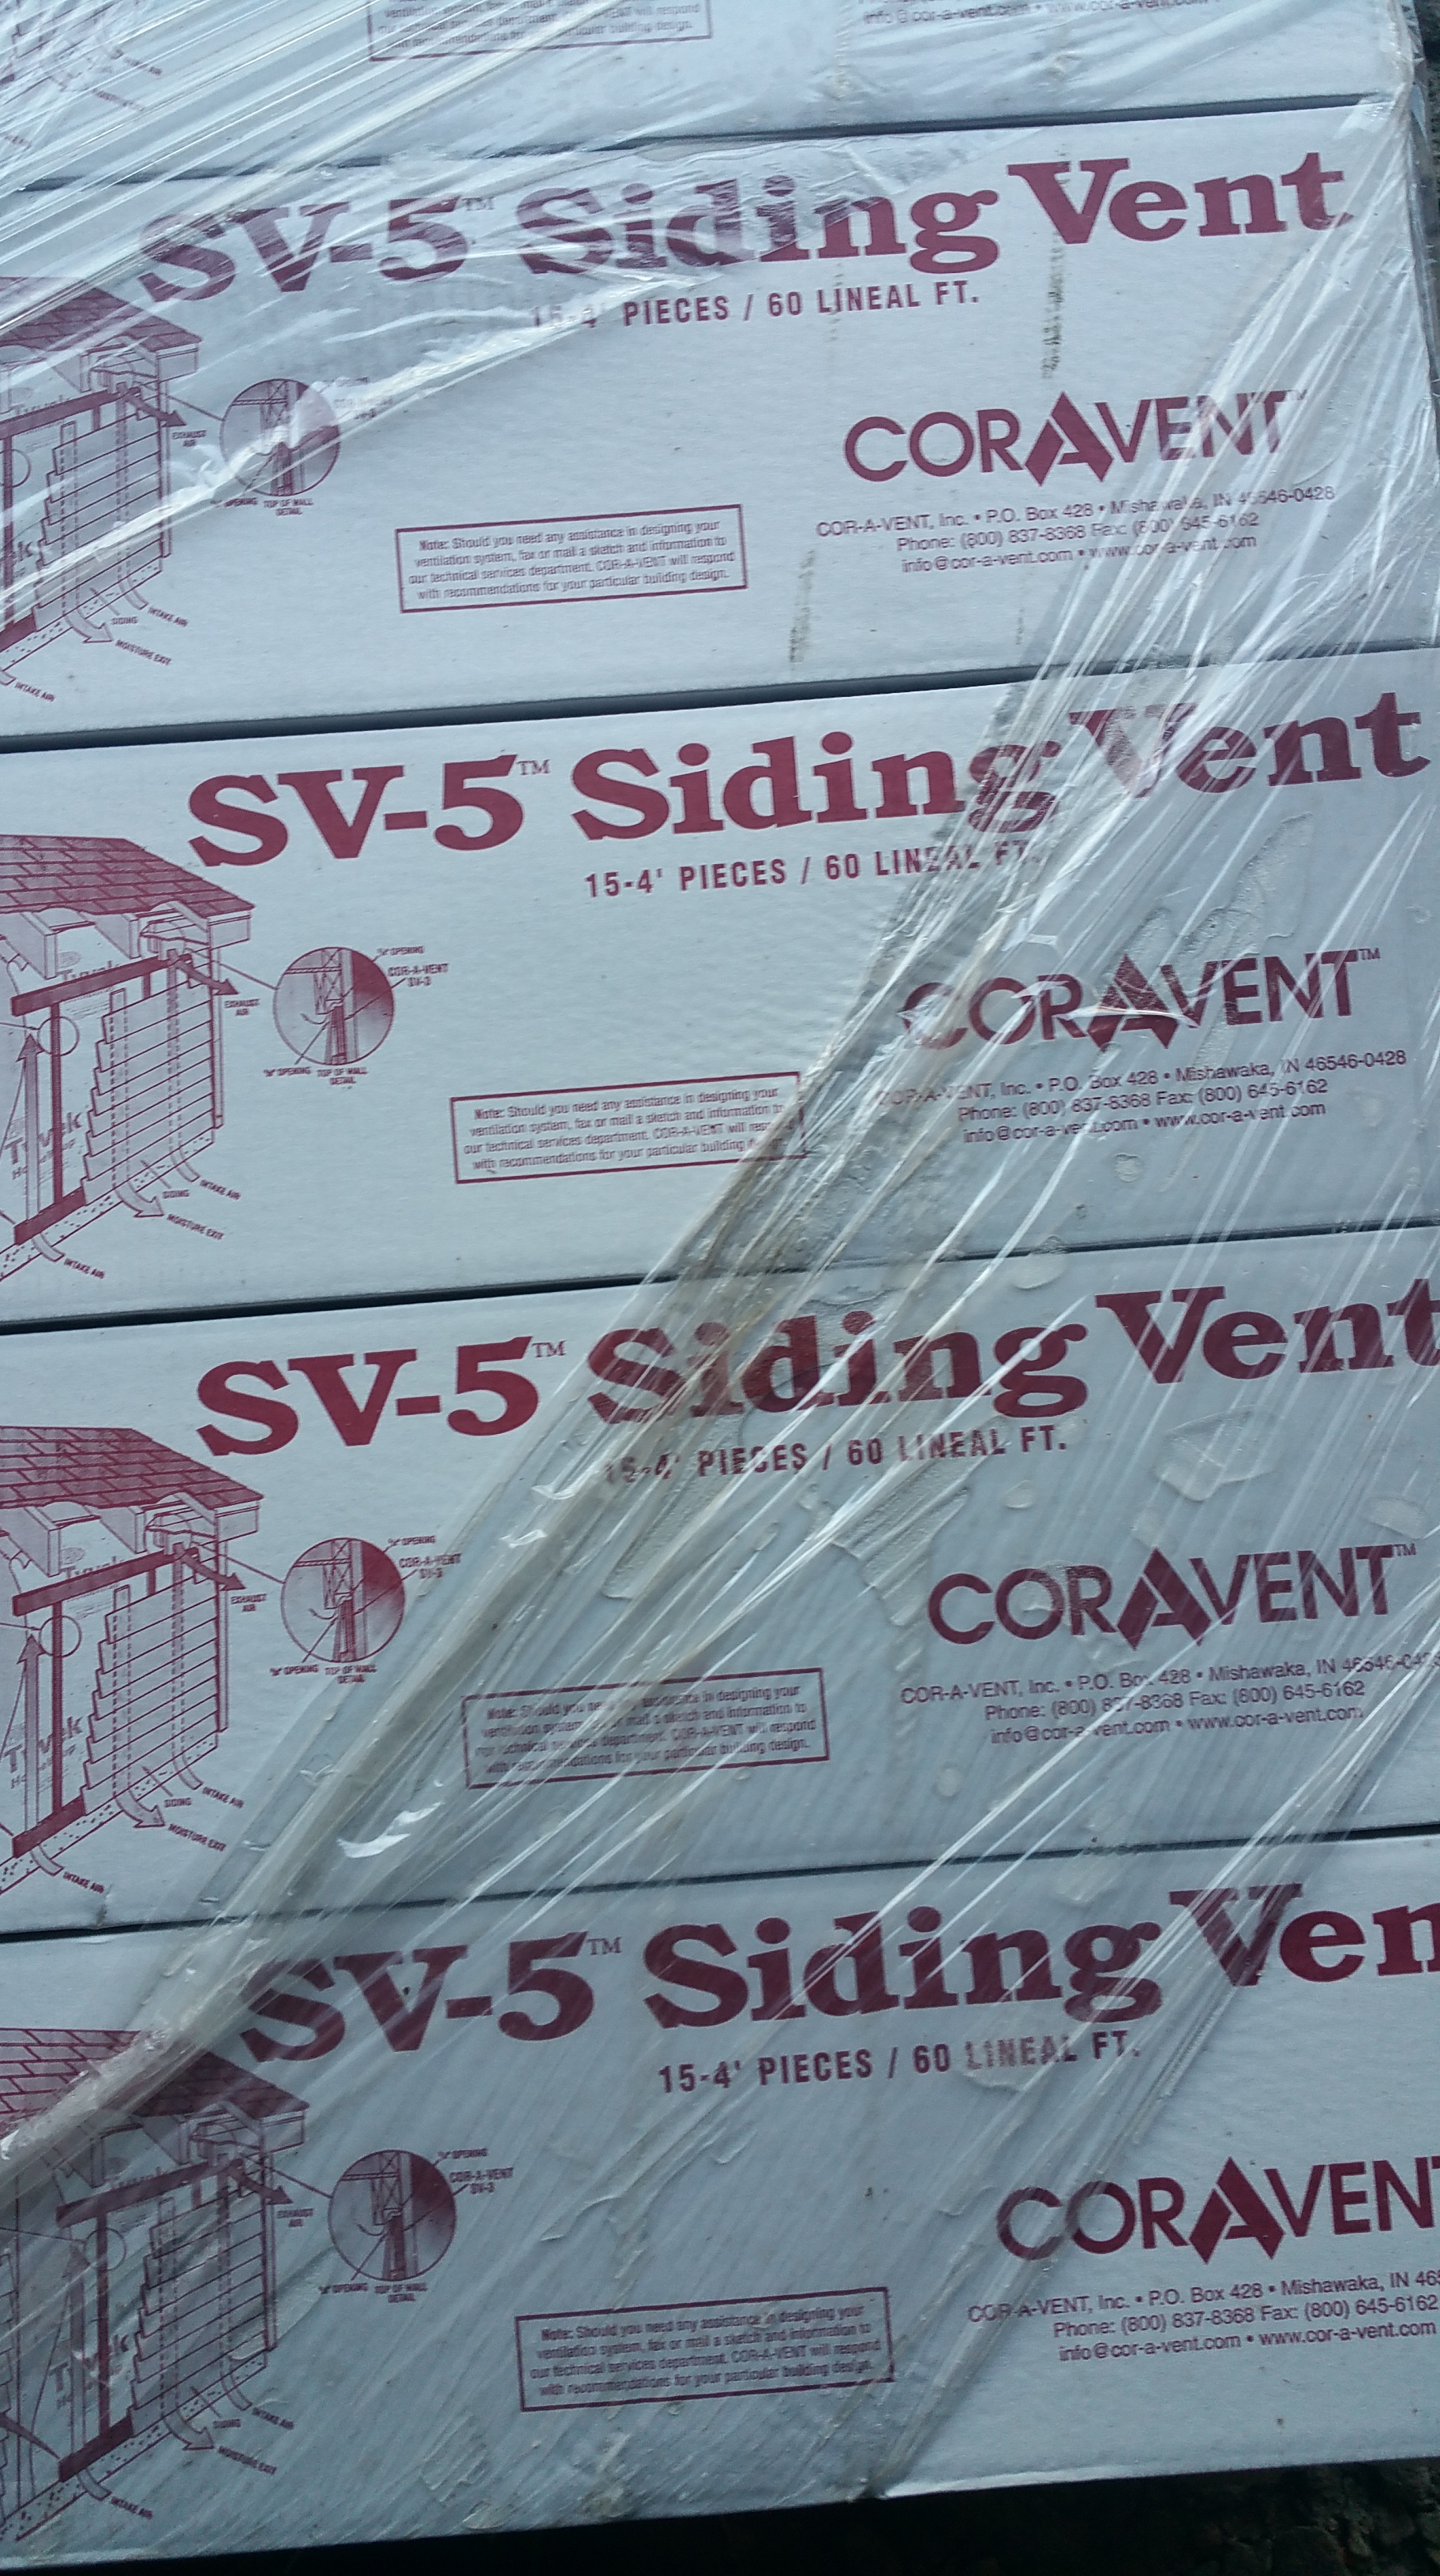 cor-a-vent-product-label